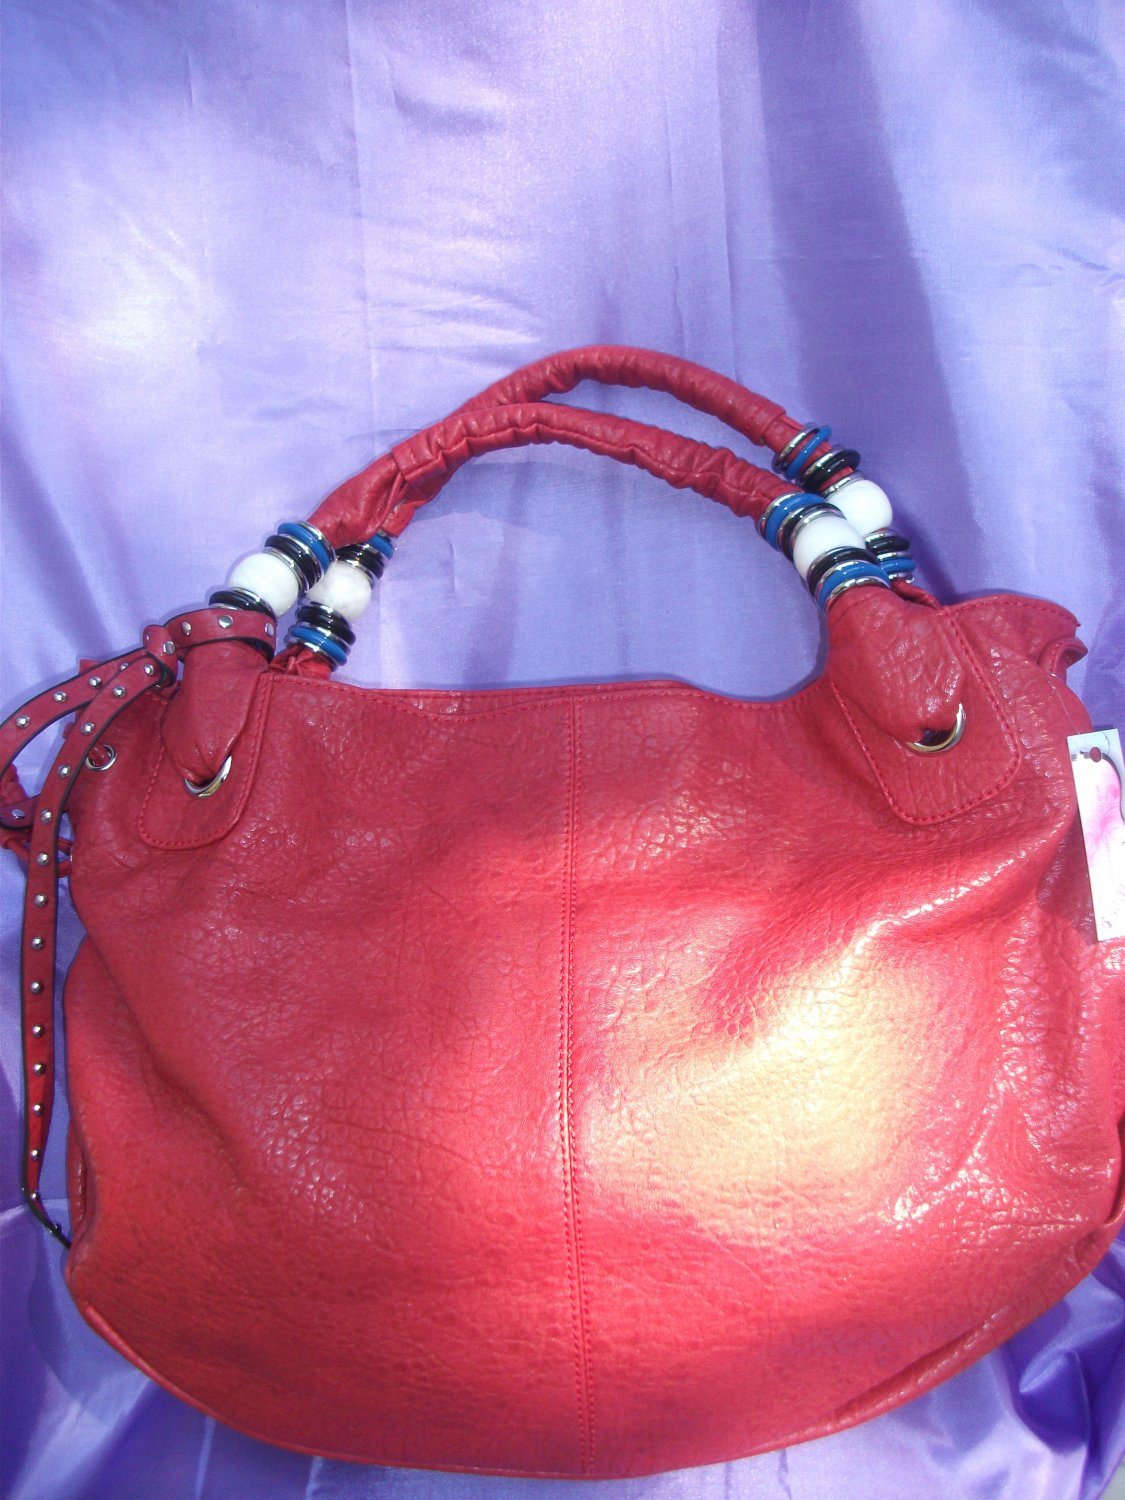 Red HOBO handbag